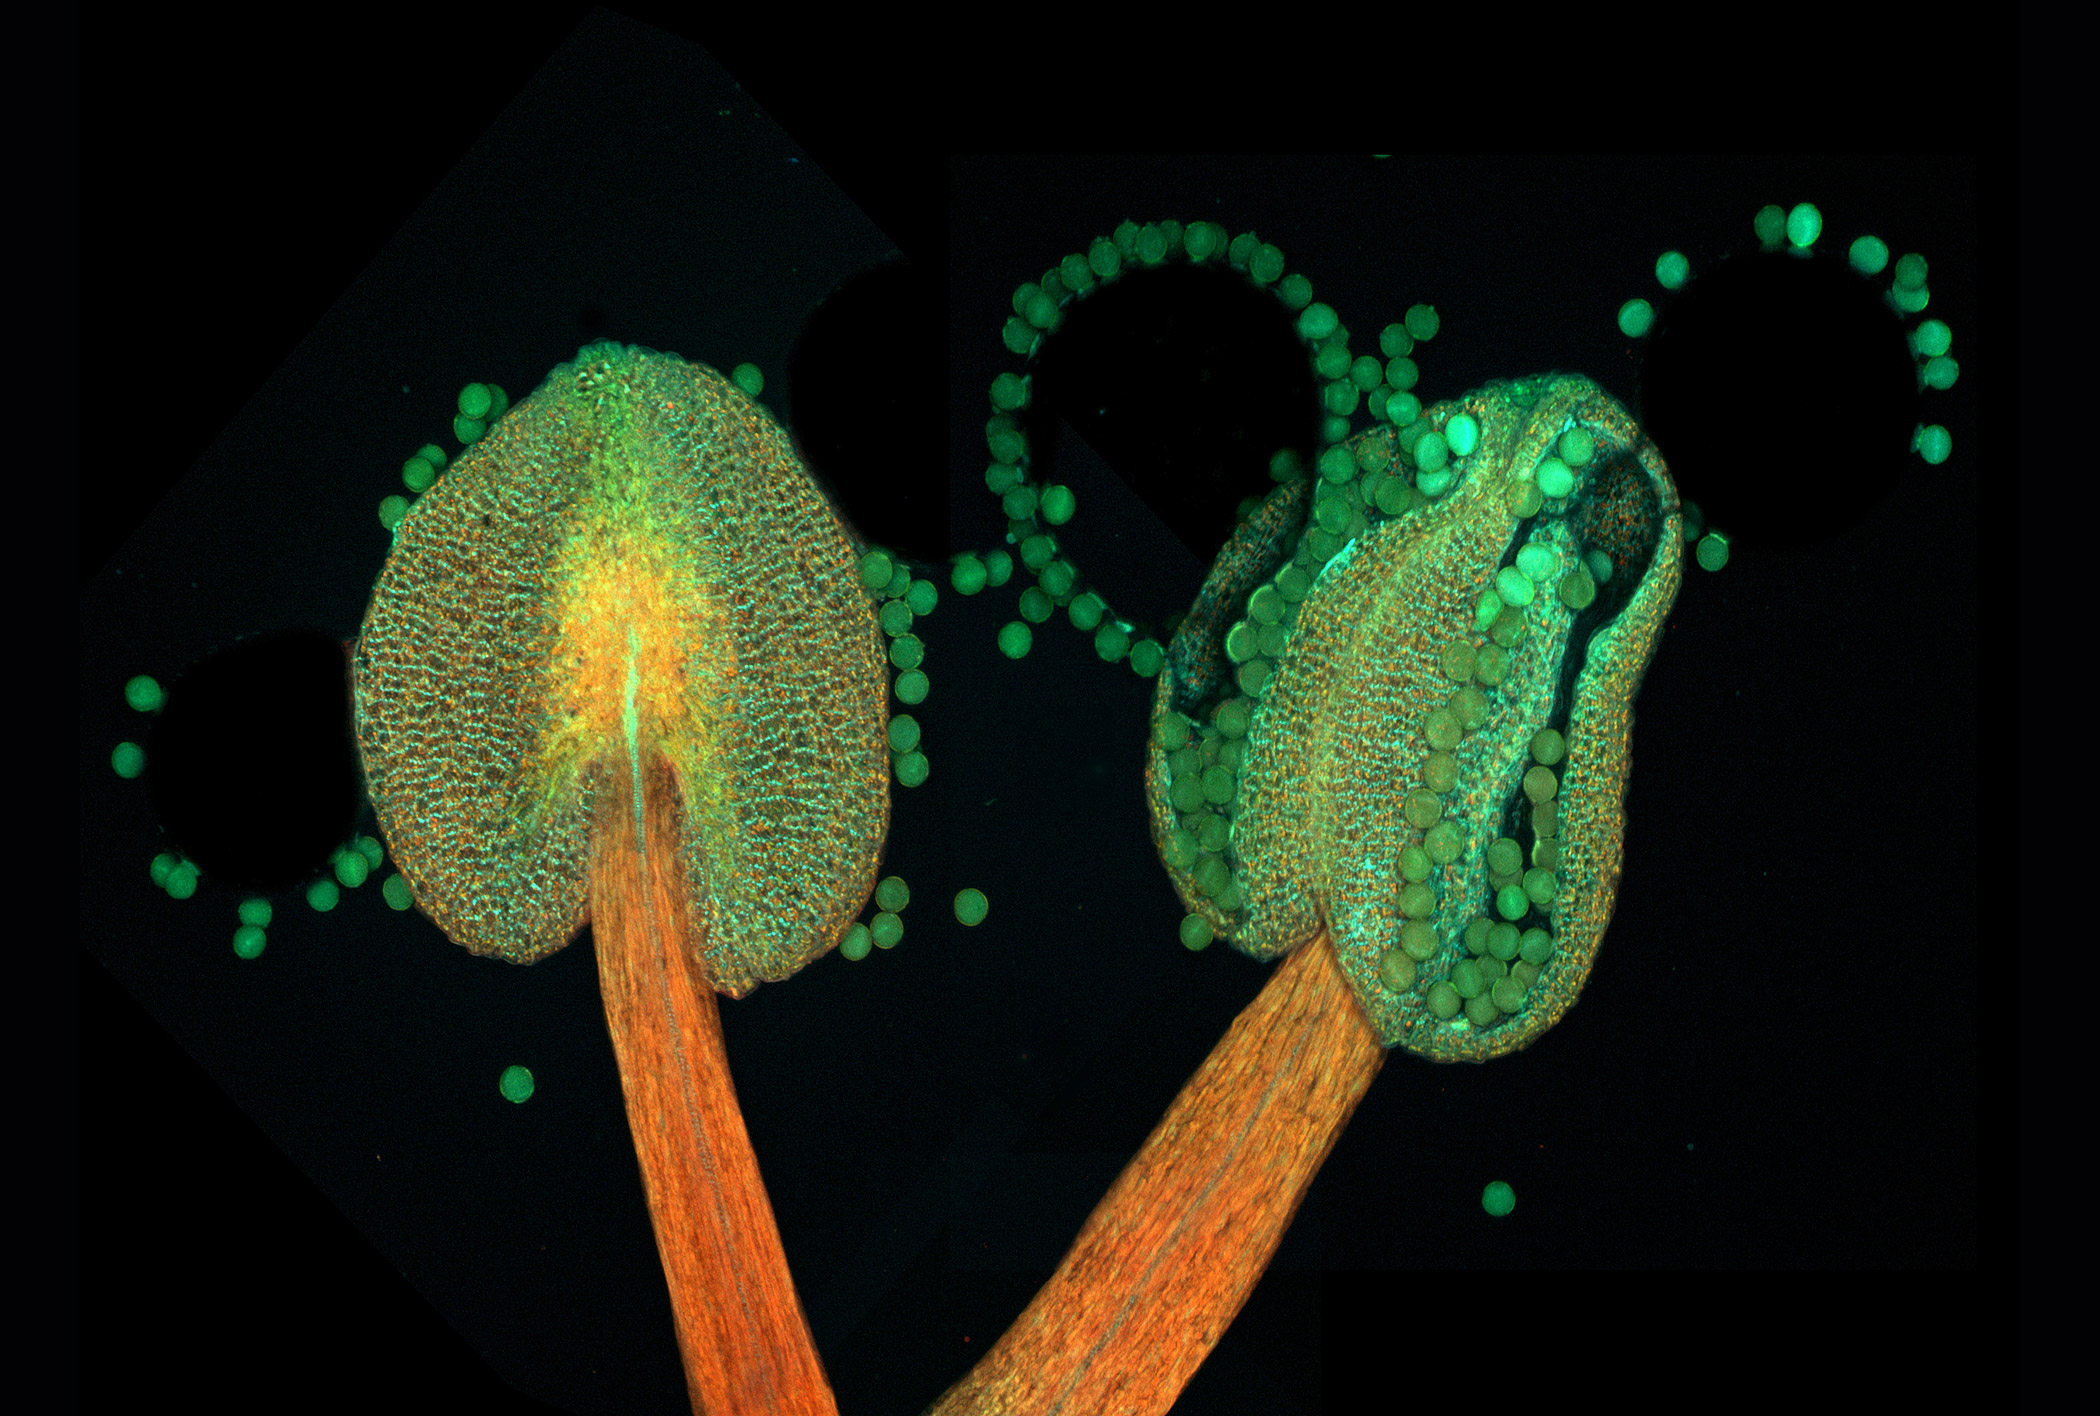 Anther of a flowering plant (Arabidopsis thaliana) at 20x magnification.